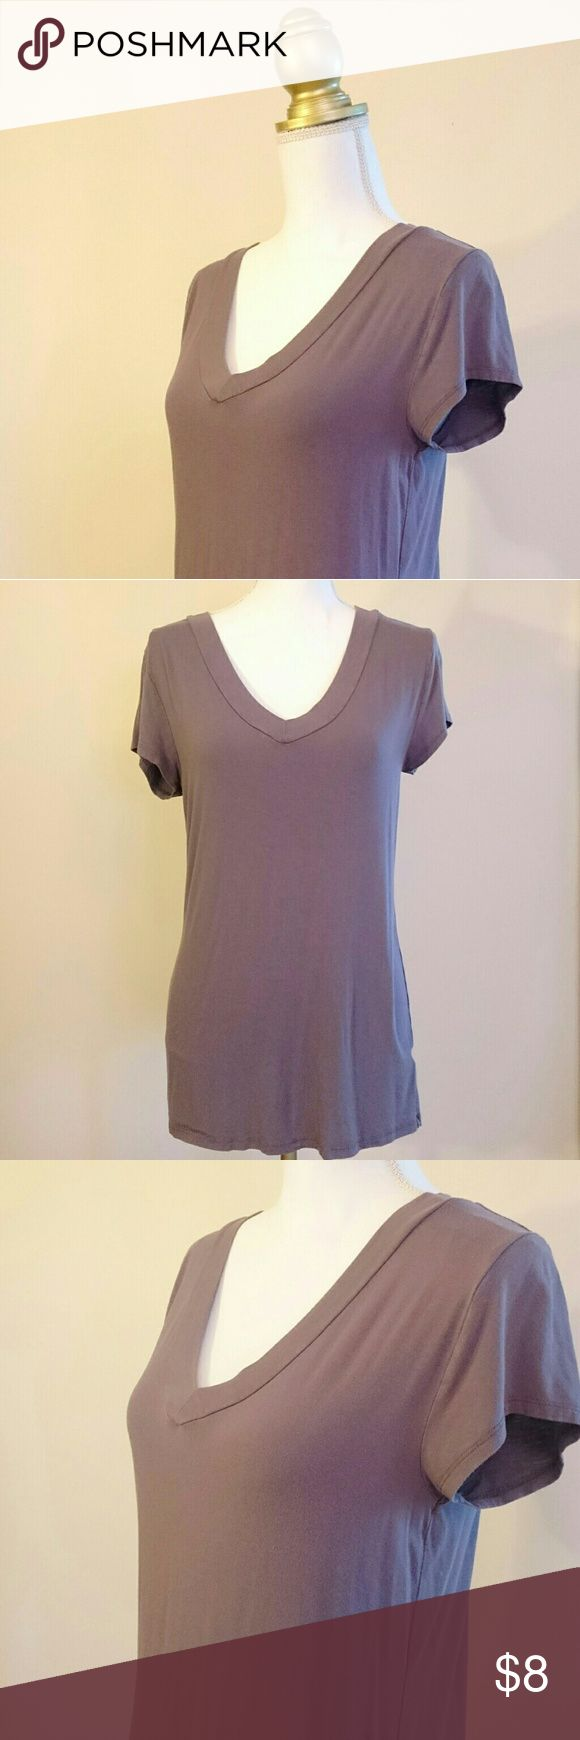 Gray v-neck Mossimo tee, super soft and very comfy My fav v-neck. I liked it so much that I accidentally bought it twice...so I have spare to sell to you. What's so great about it? Fabric is super soft and lightweight, but not seethrough thin like some. The color is a really pretty mocha, warm grayish color, a really good basic neutral shade. It does not have a pointless, tiny pocket on the front. Good thrown on and run out the door shirt. Fabric content: 95% rayon, 5% spandex. Mossimo…